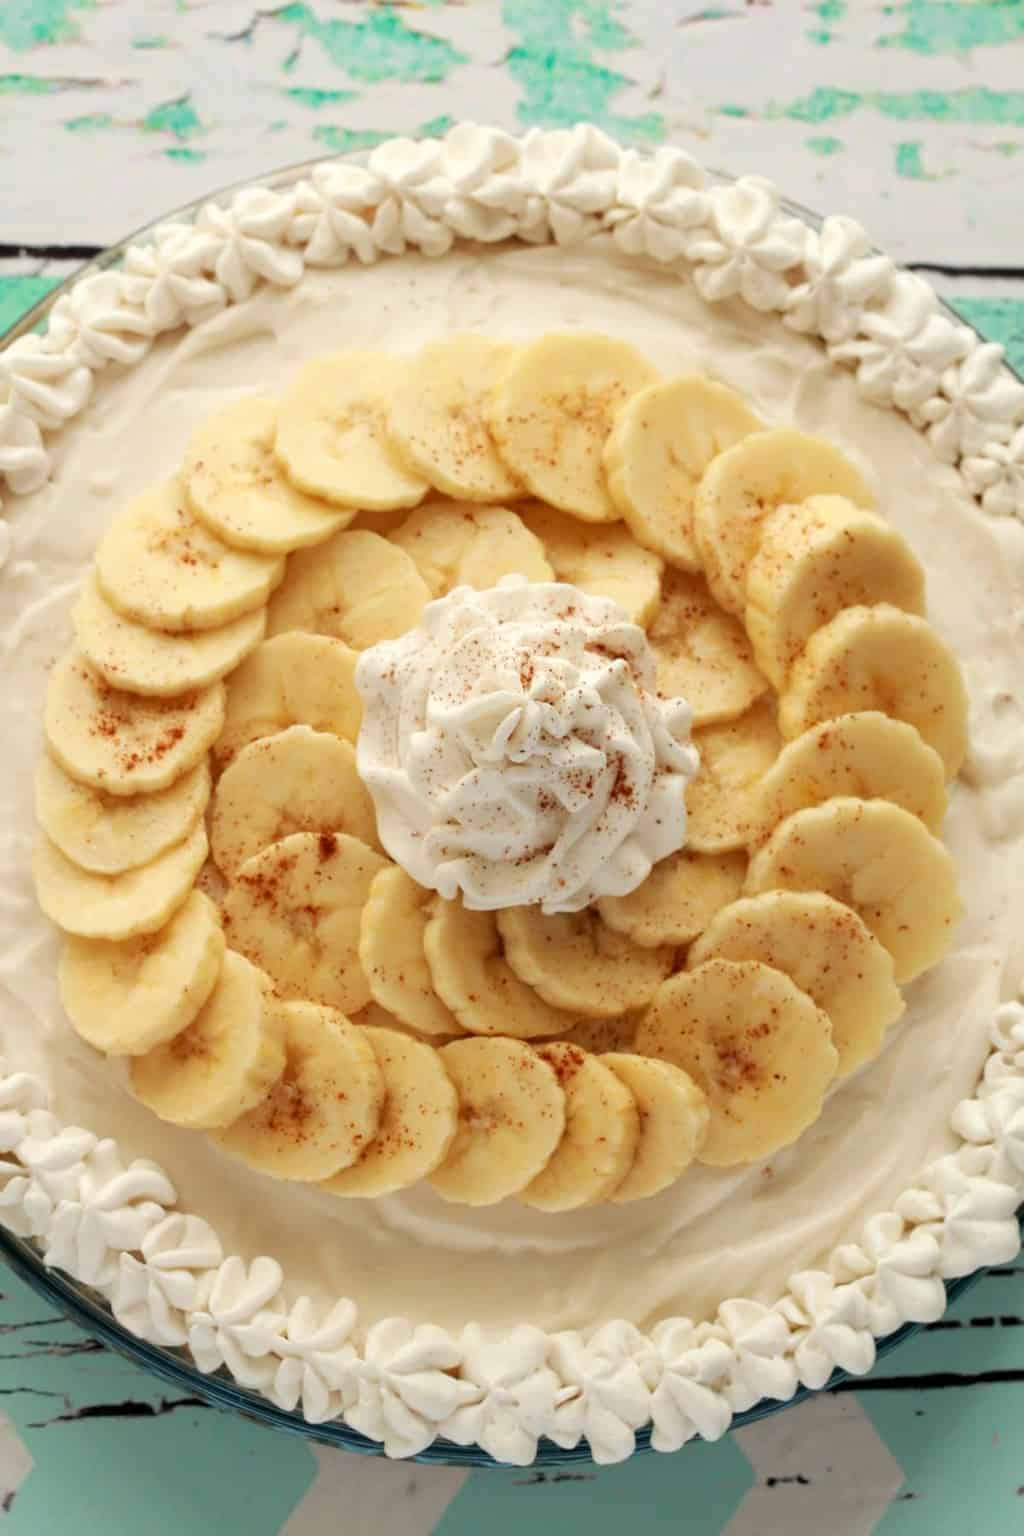 Vegan banana cream pie topped with sliced banana and vegan whipped cream in a glass pie dish.